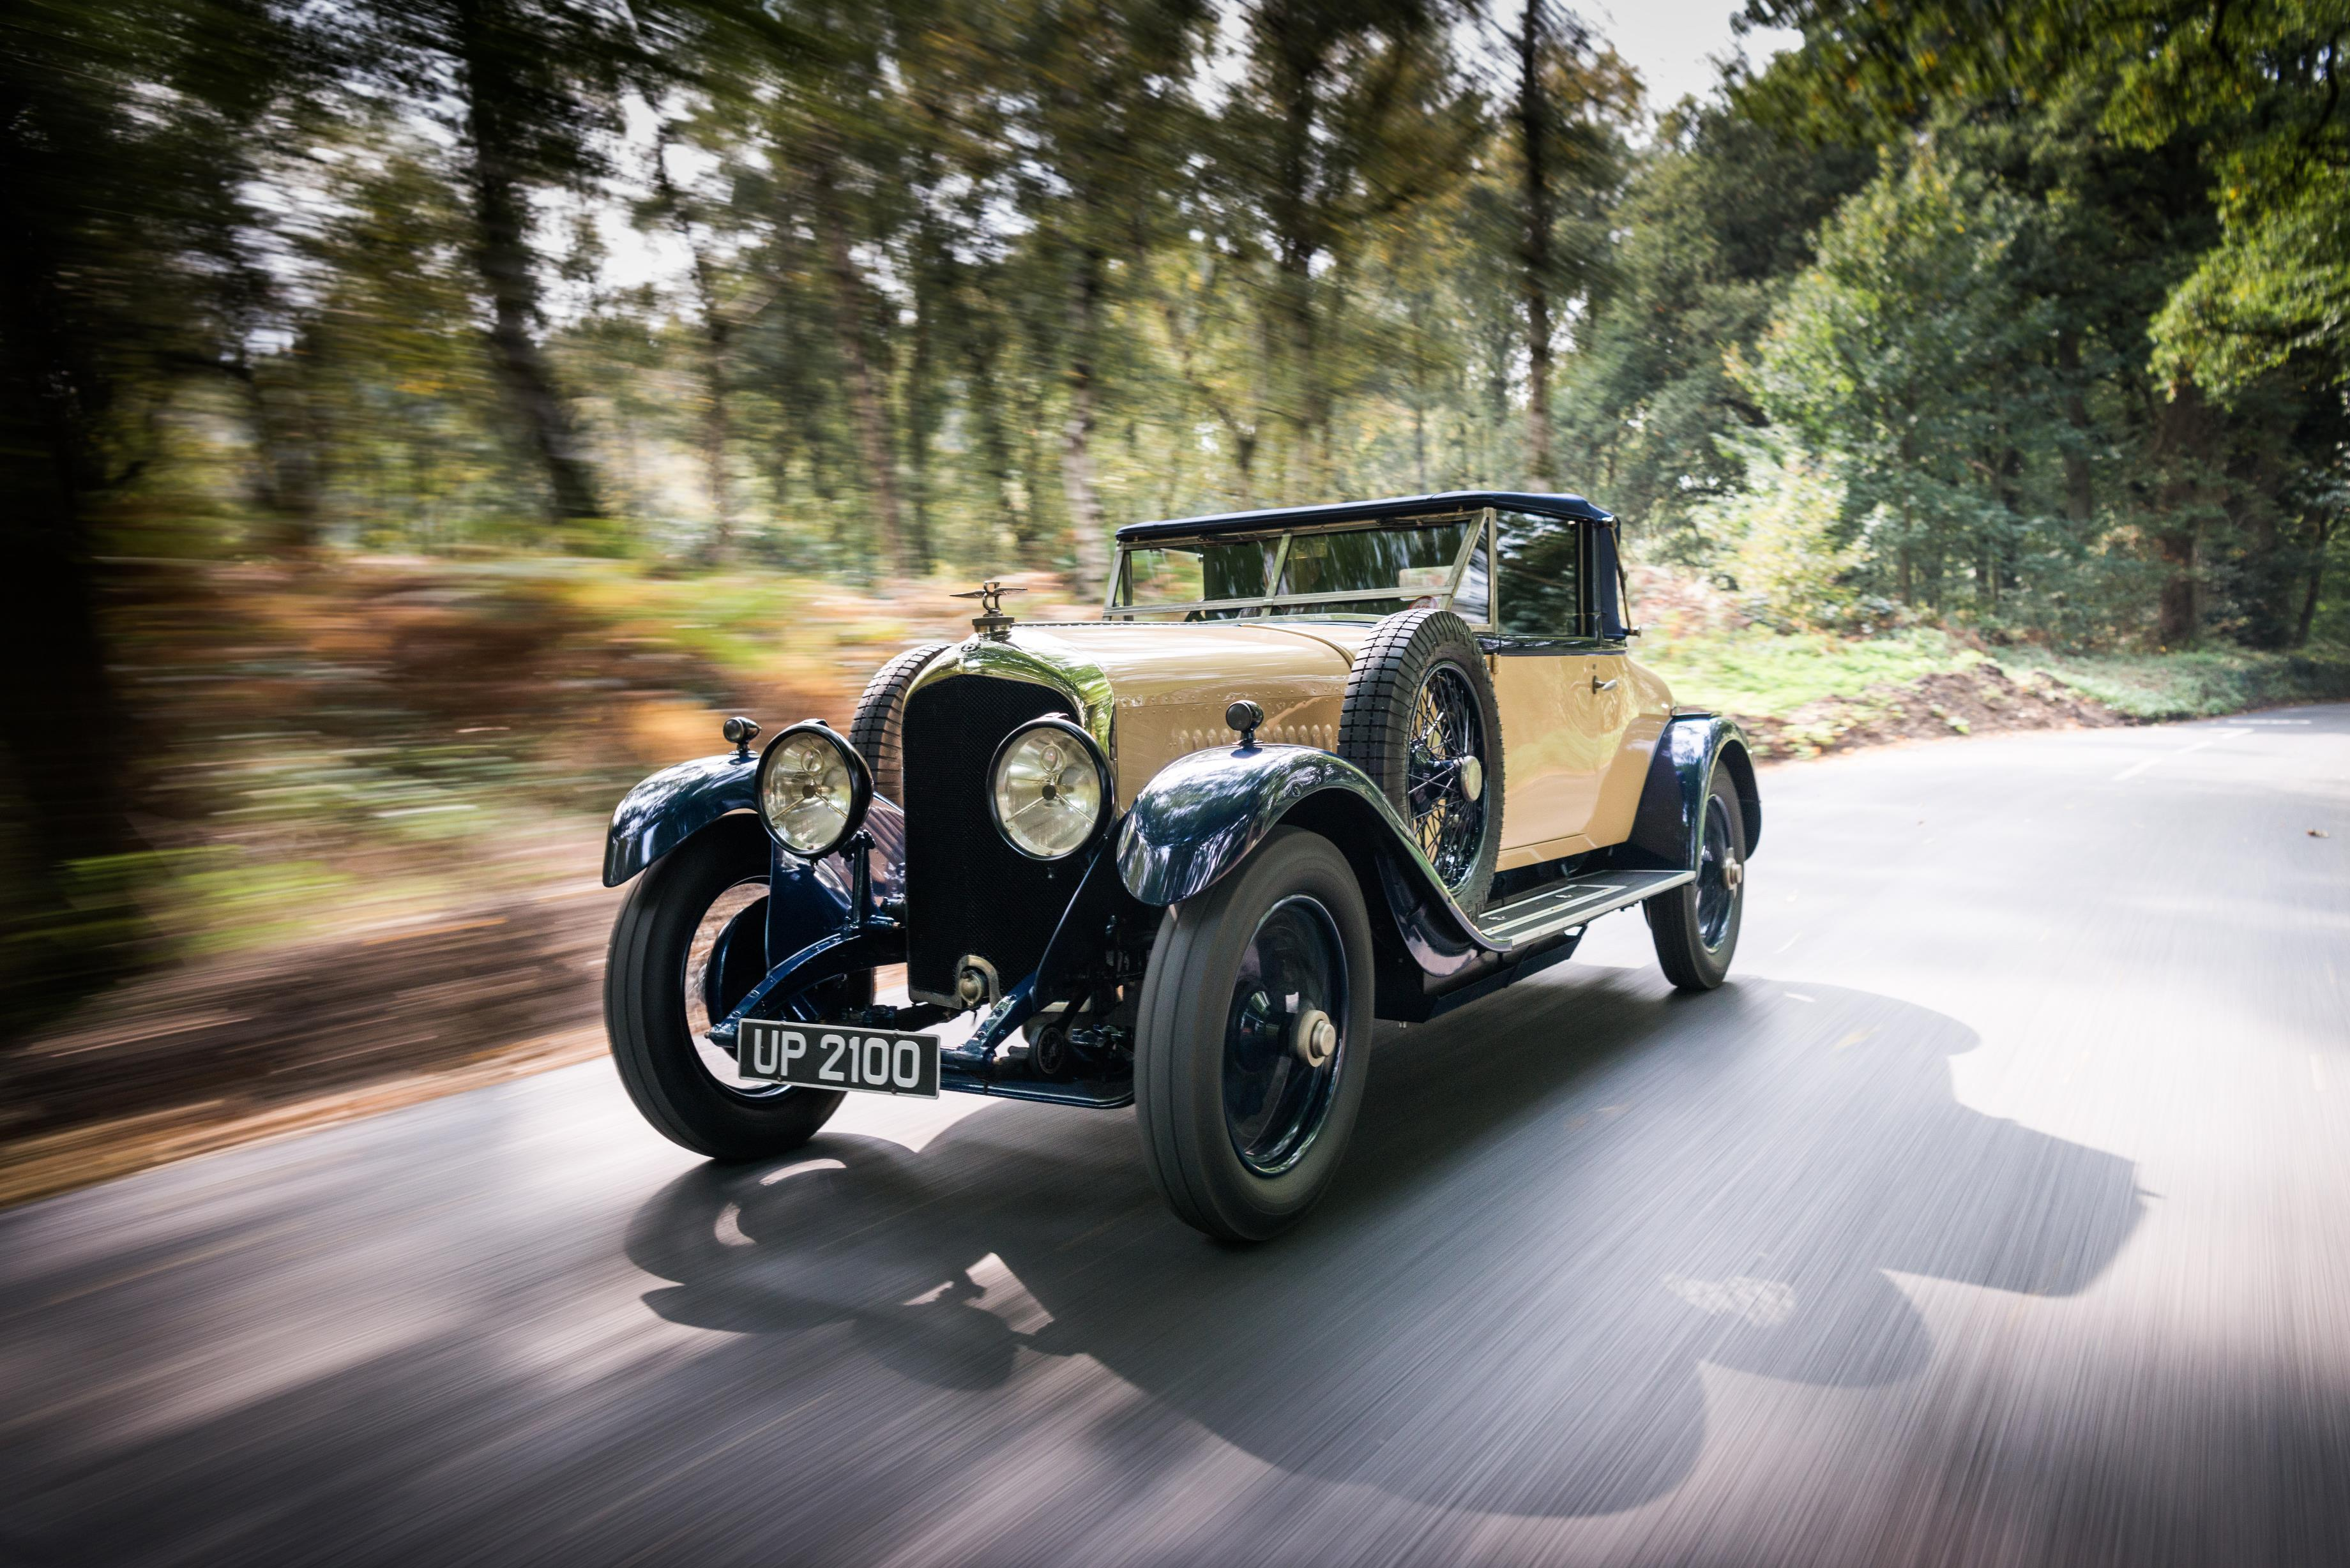 Rare 'Victor Broom' bodied Bentley 41/2 Litre brought back to life by William Medcalf.